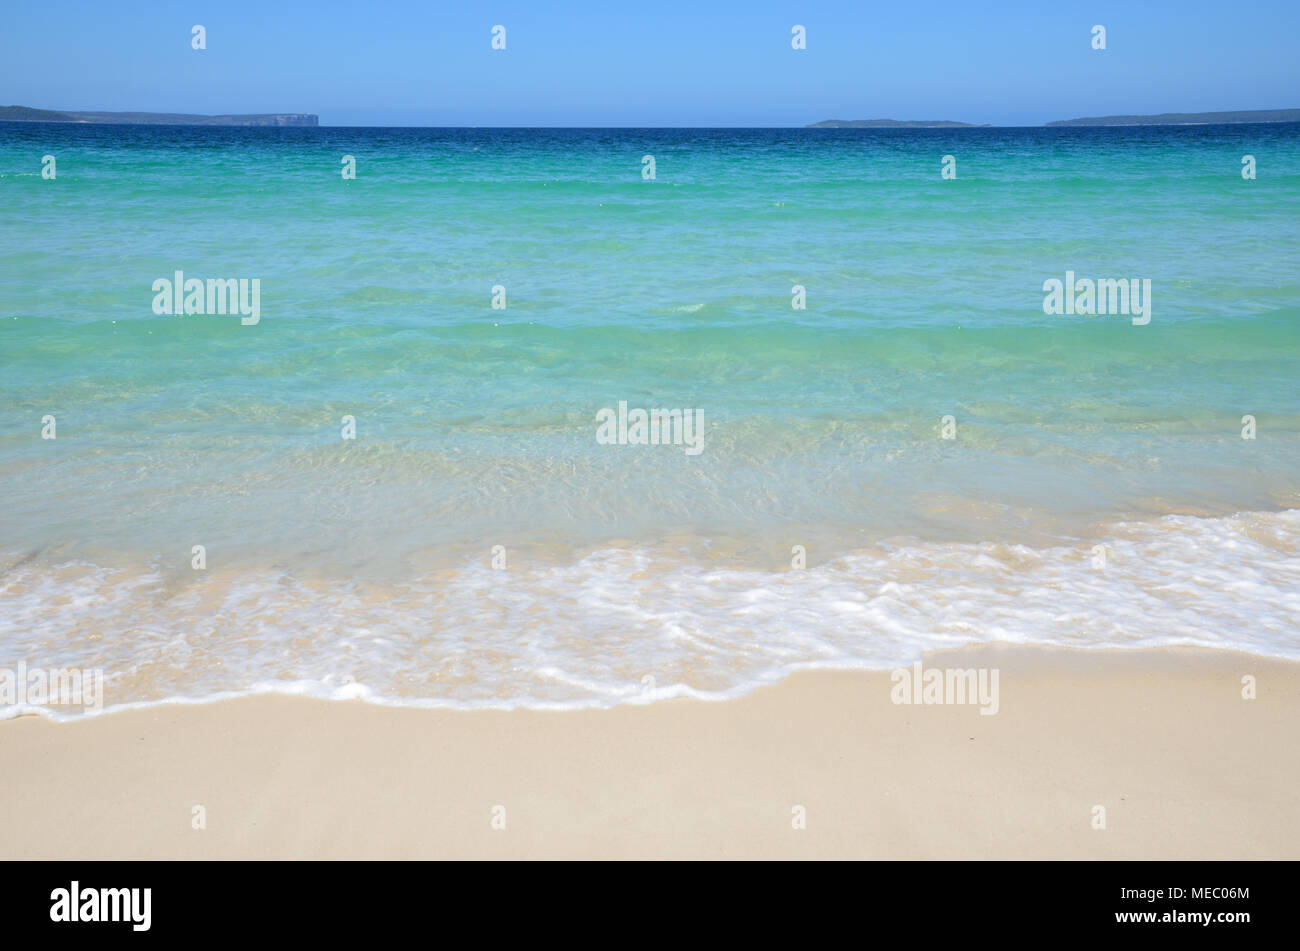 Scenic view from beach across bay to headland. Beach scene of ocean lapping on beach with calm water. - Stock Image